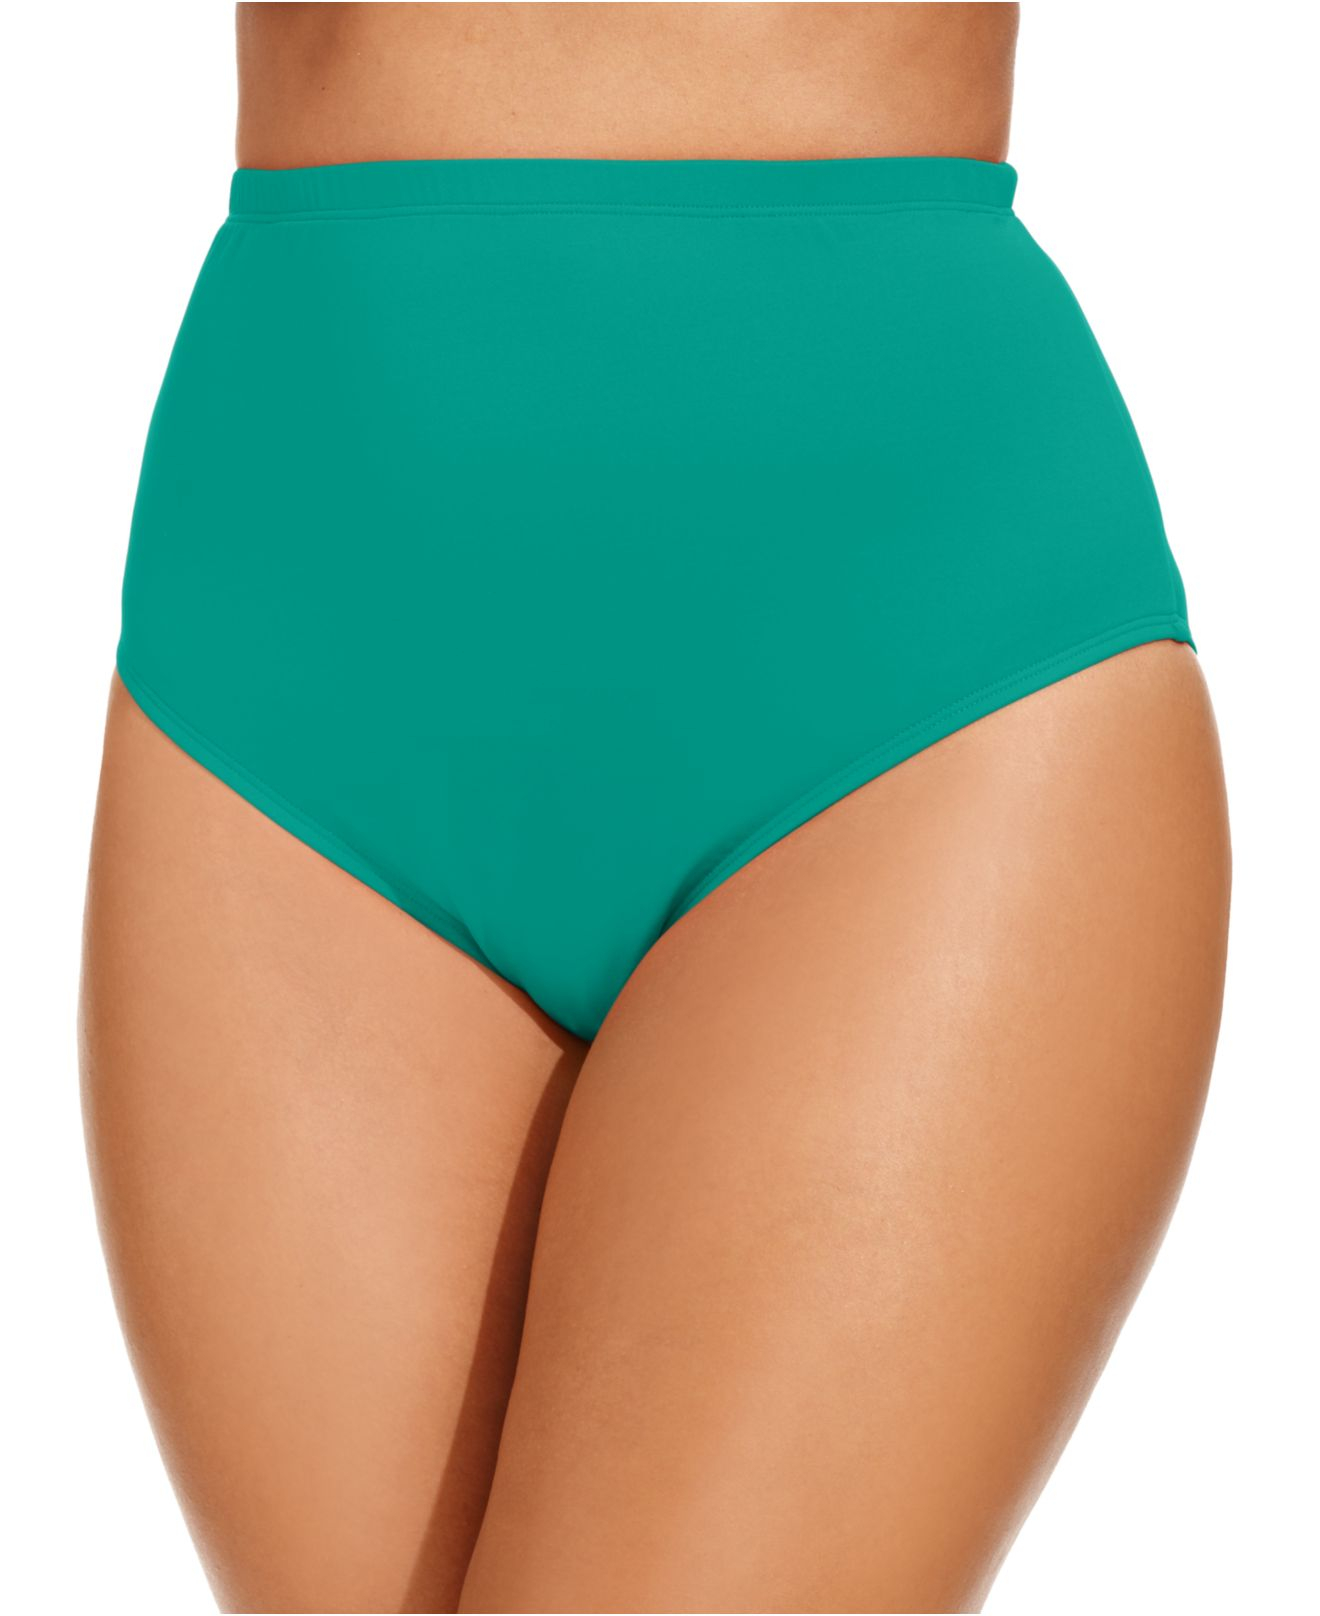 0a62f476ec8c9 Gallery. Previously sold at  Macy s · Women s High Waisted Bikini Bottoms  ...